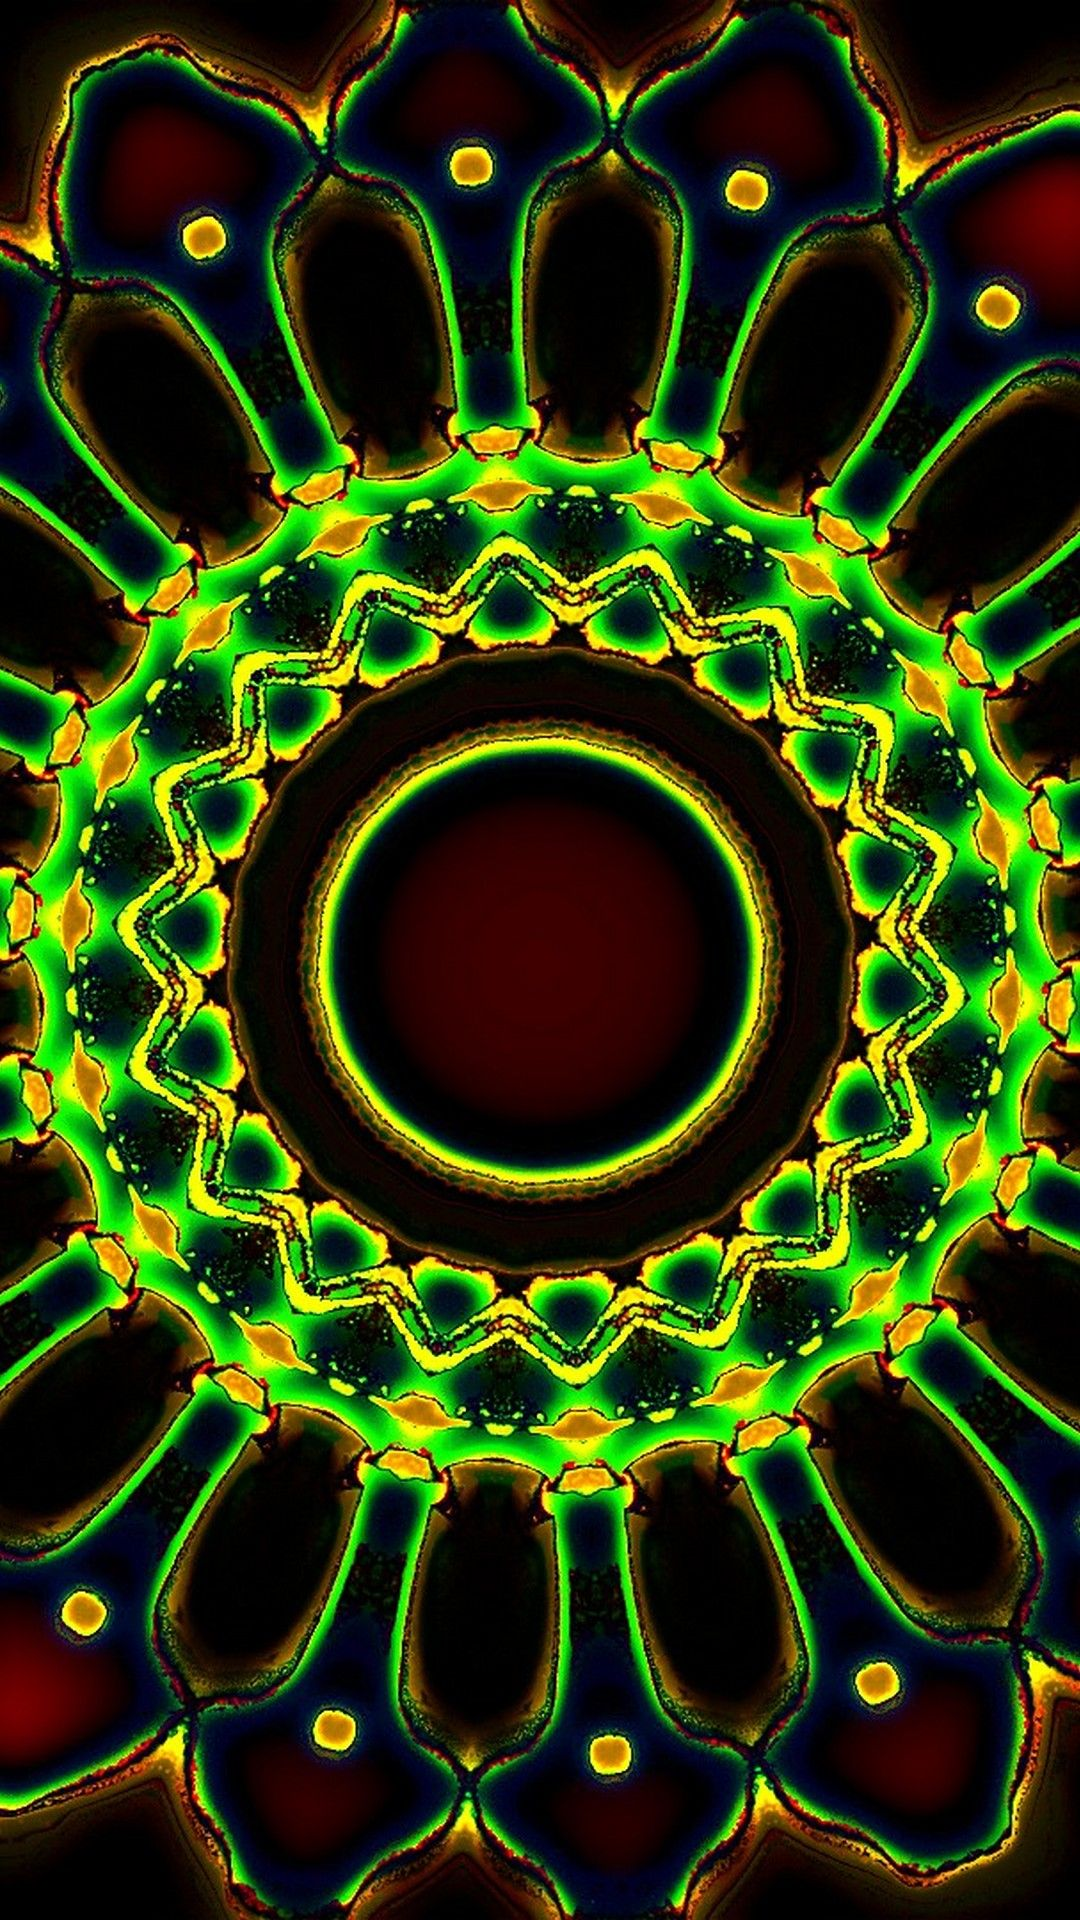 Wallpapers Cool Trippy Android wallpaper, Wallpaper, Trippy